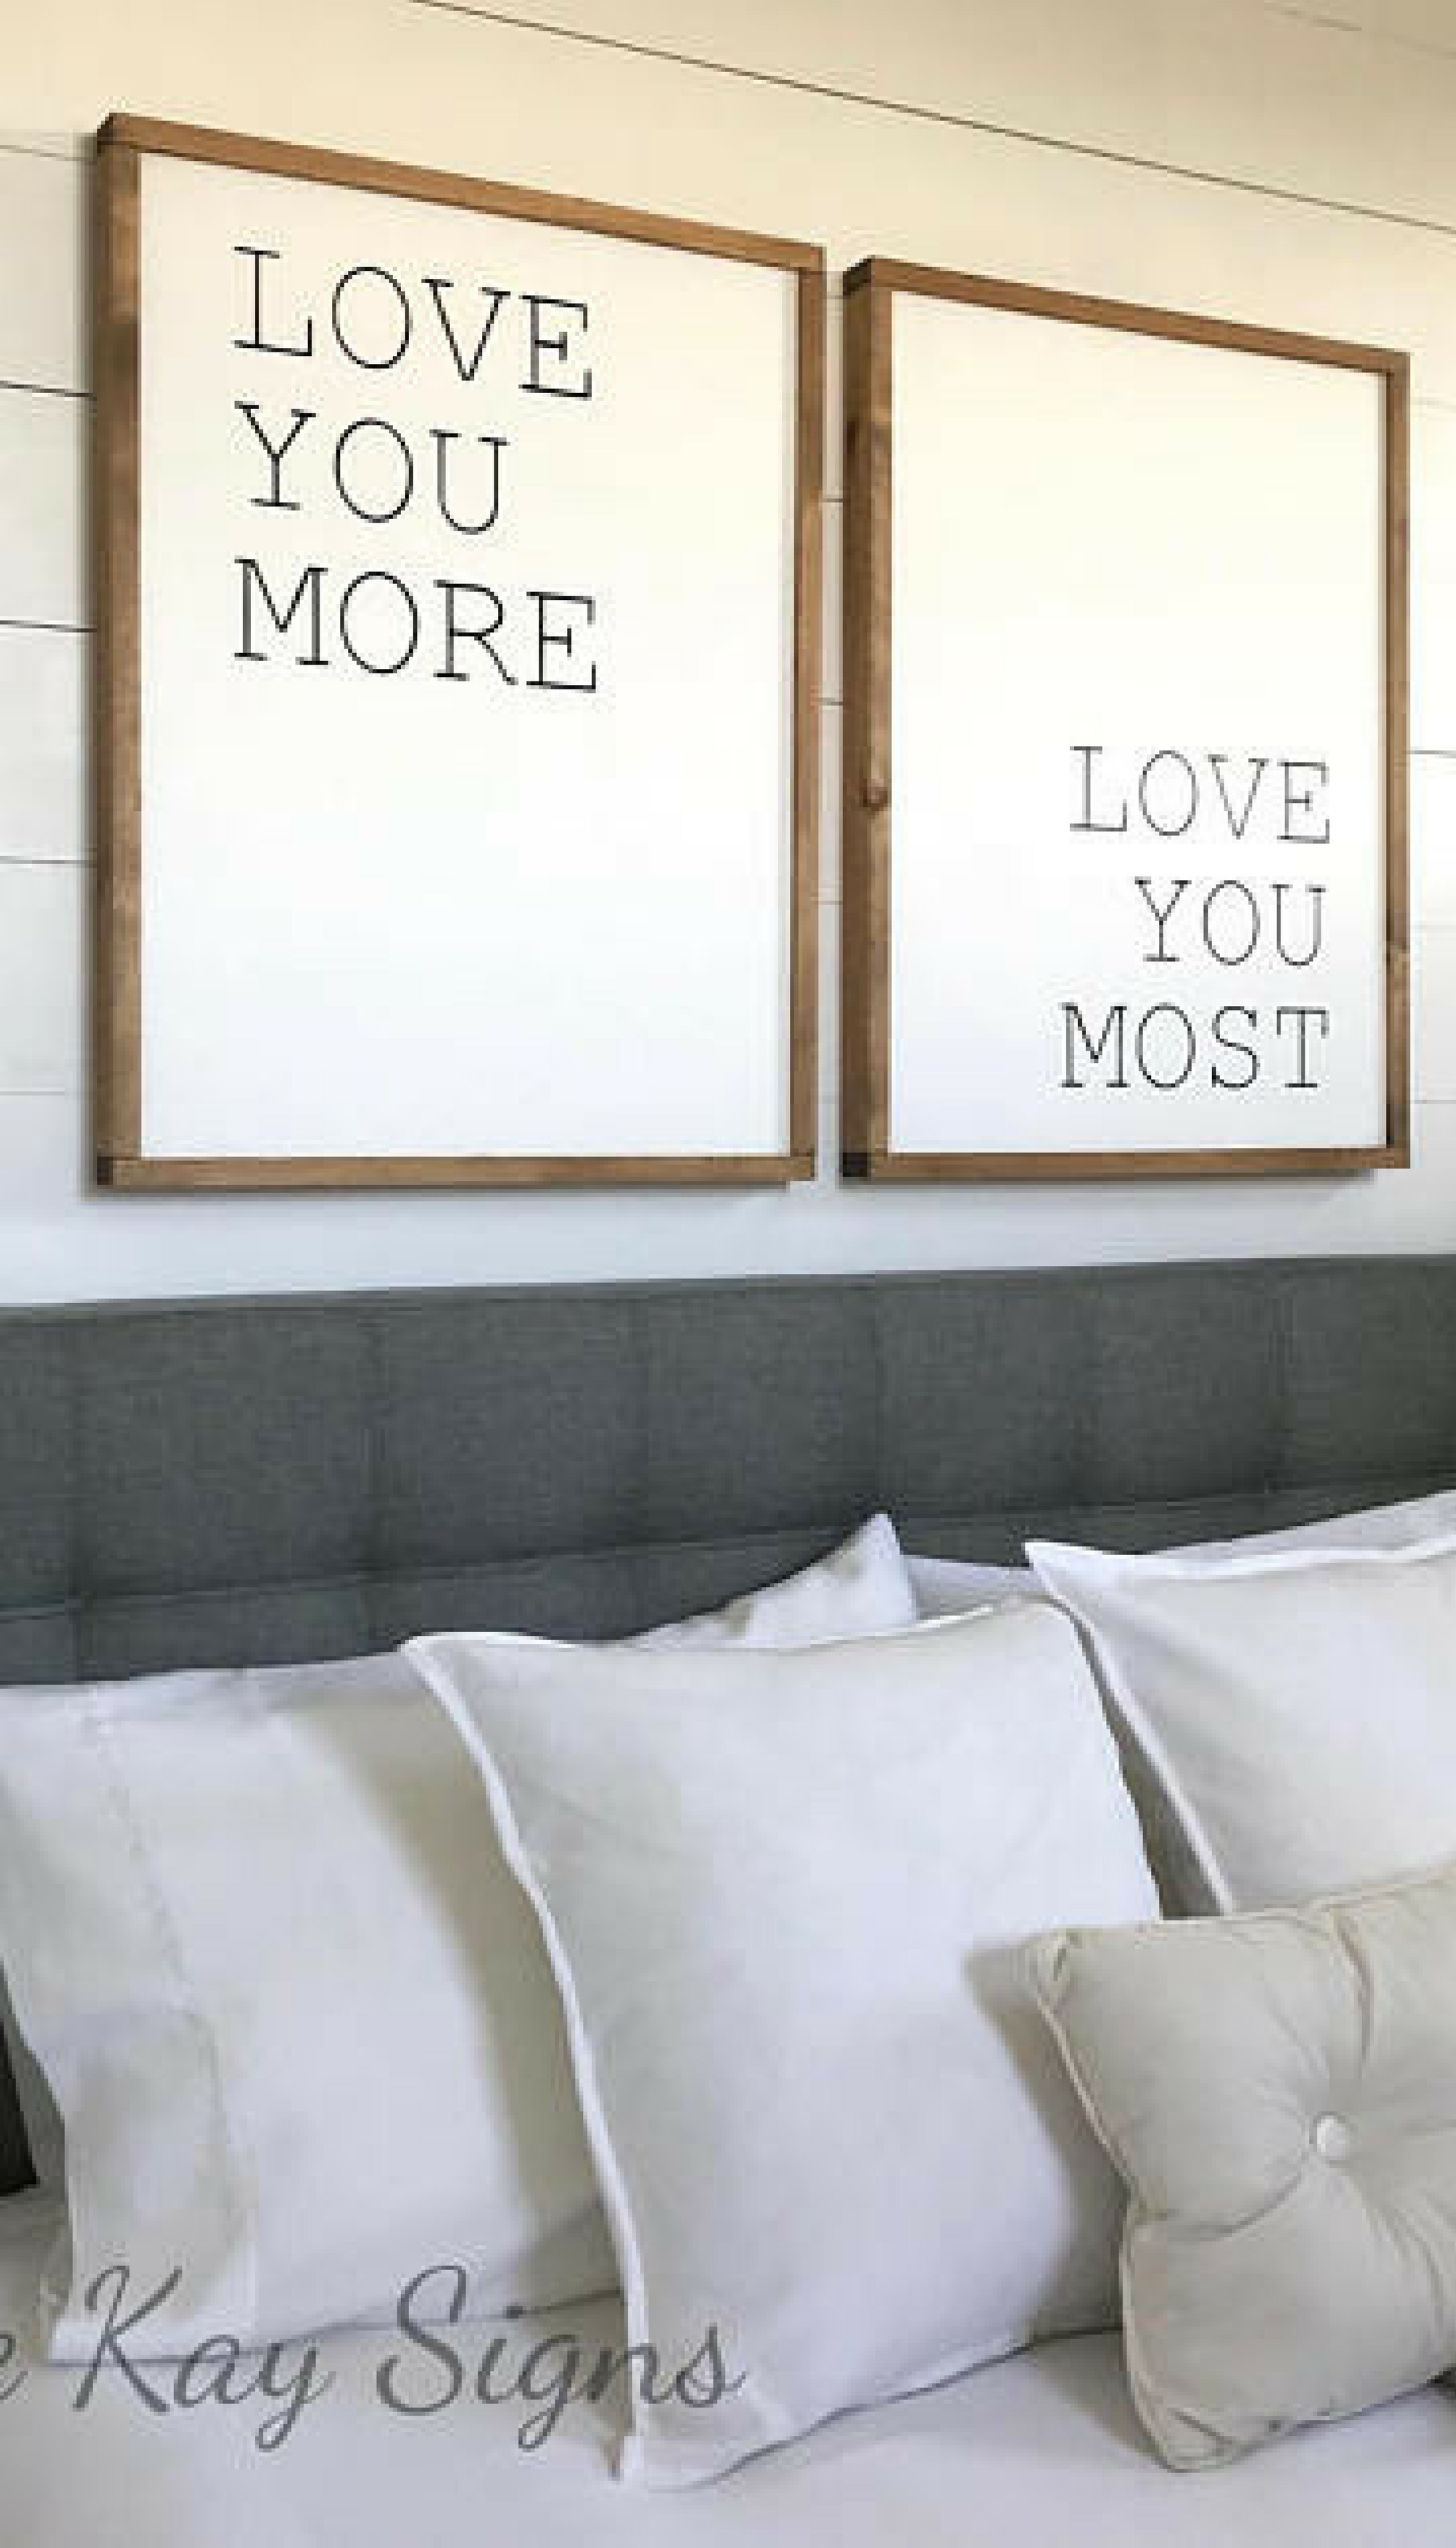 Bedroom Wall Decor | Love You More Love You Most | Wood Sign with regard to 'love You More' Wood Wall Decor (Image 6 of 30)